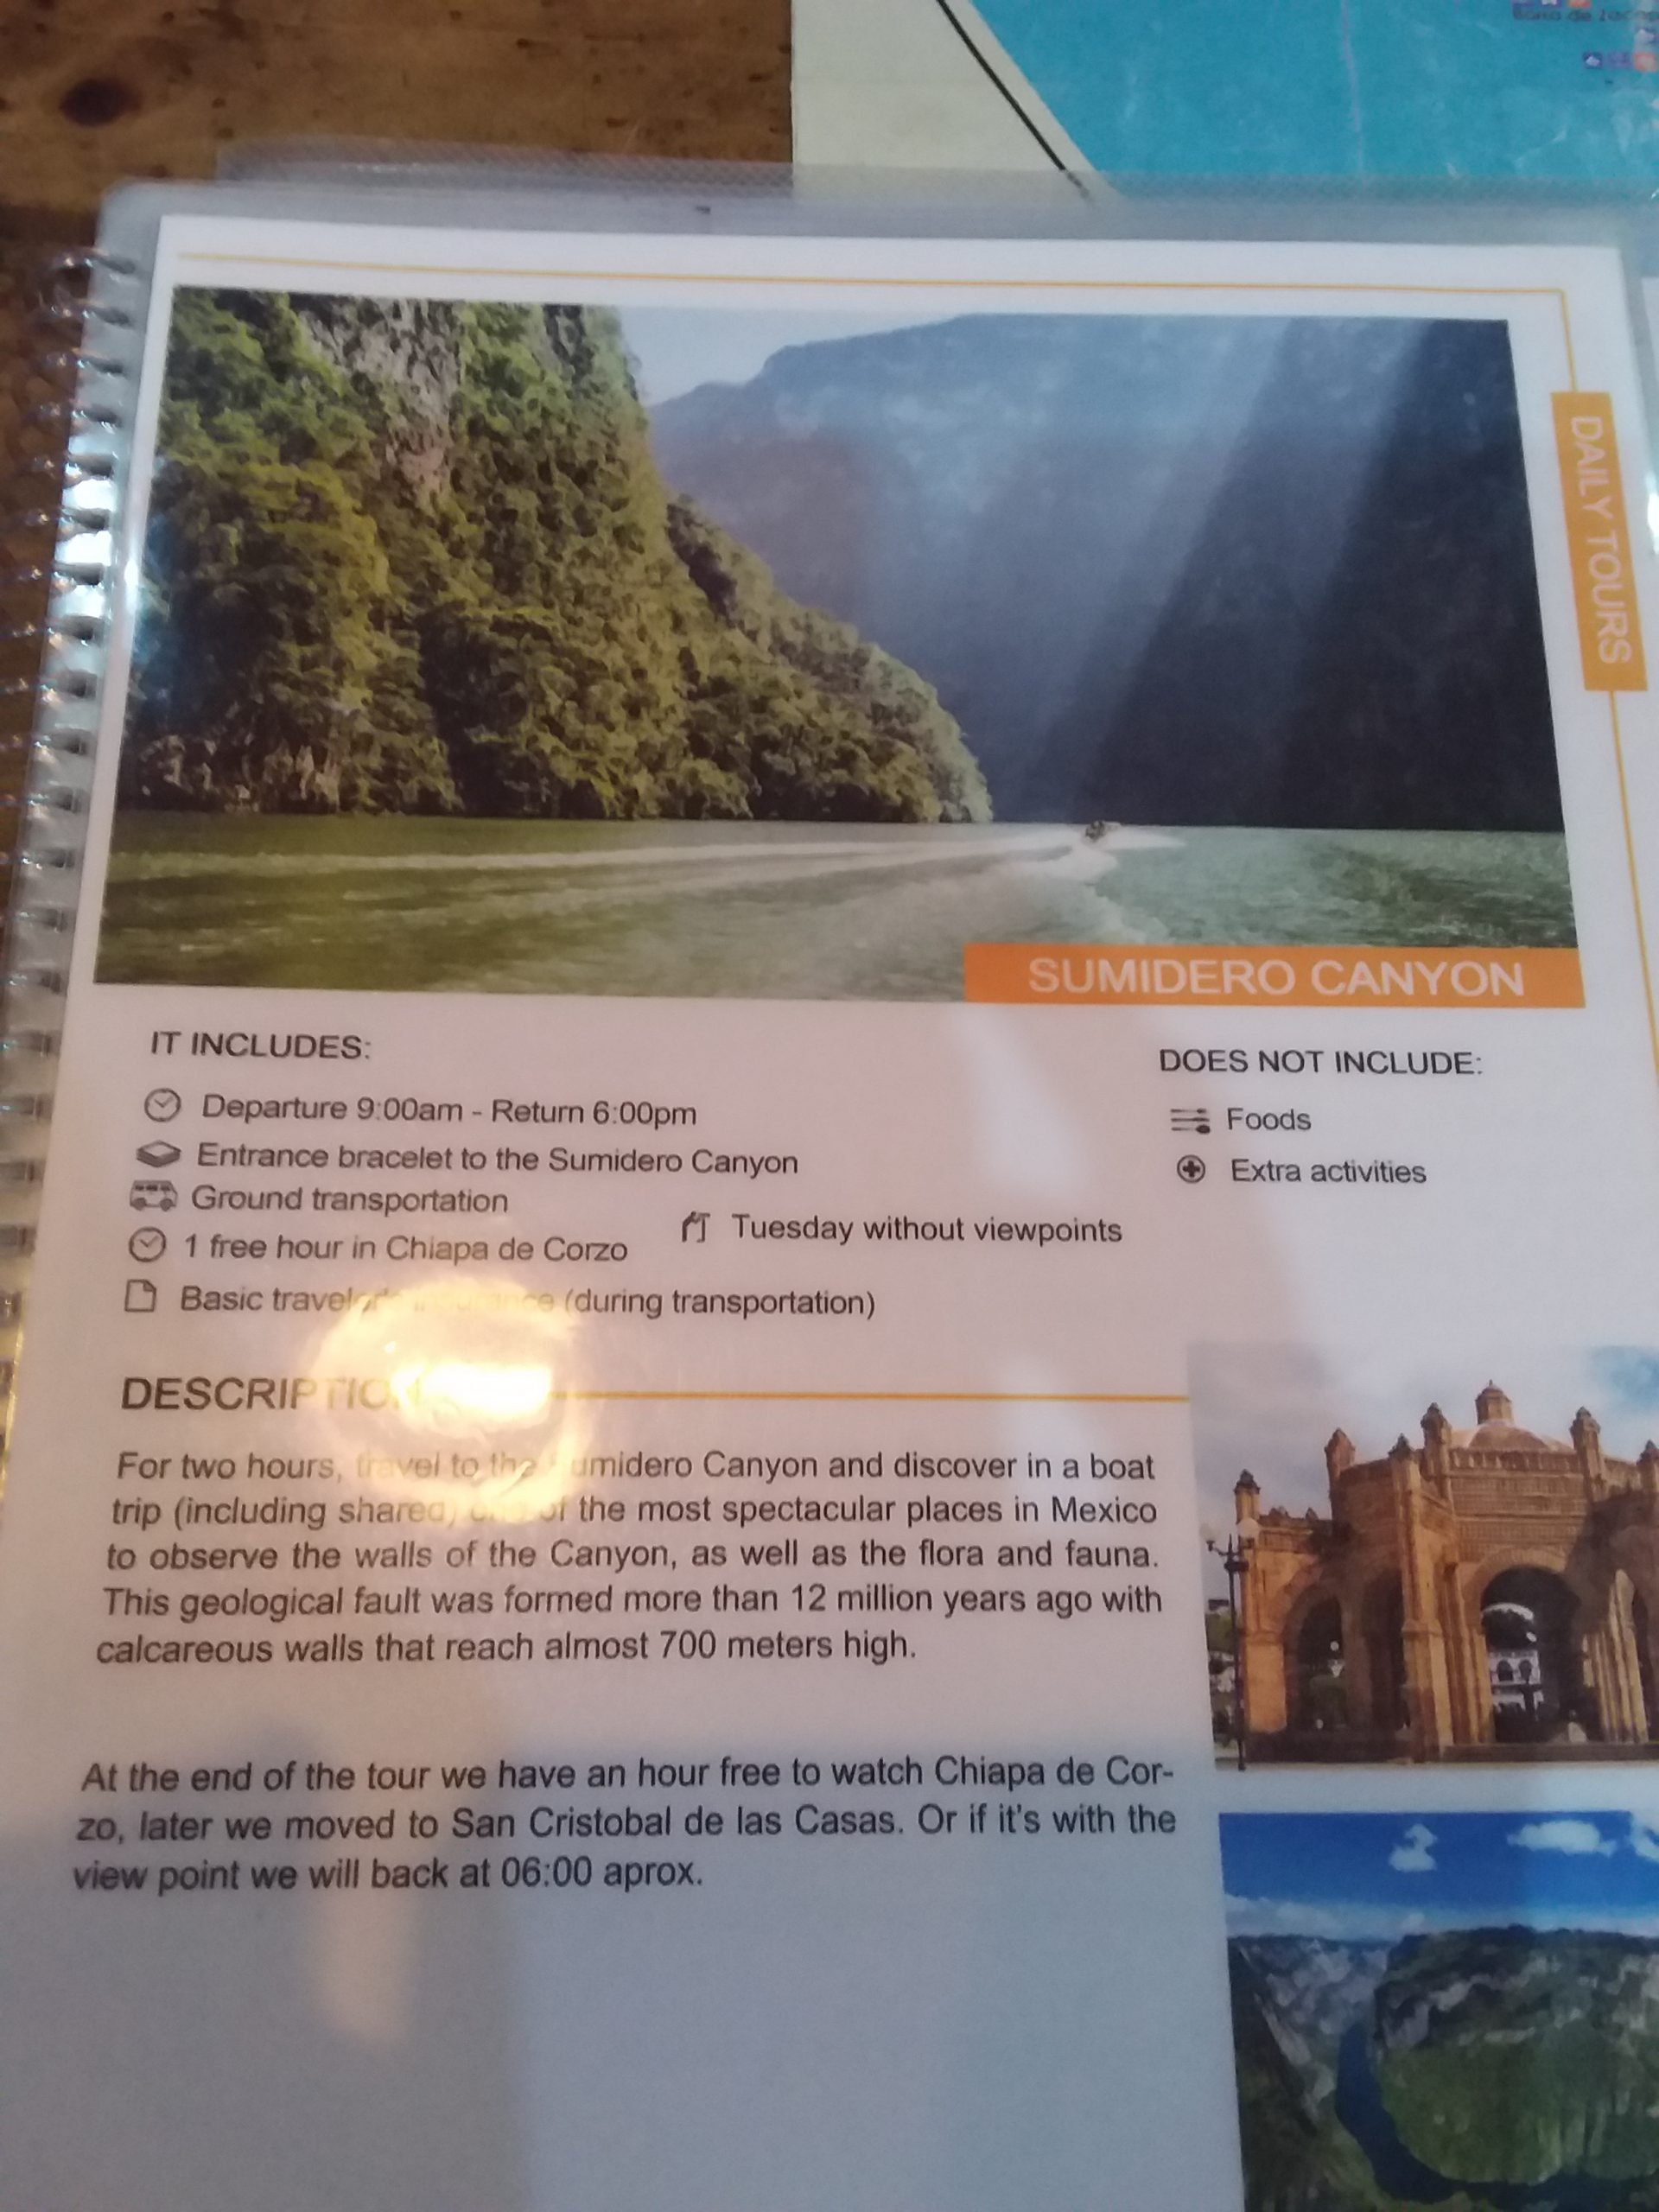 Horaire visite canyon sumidero